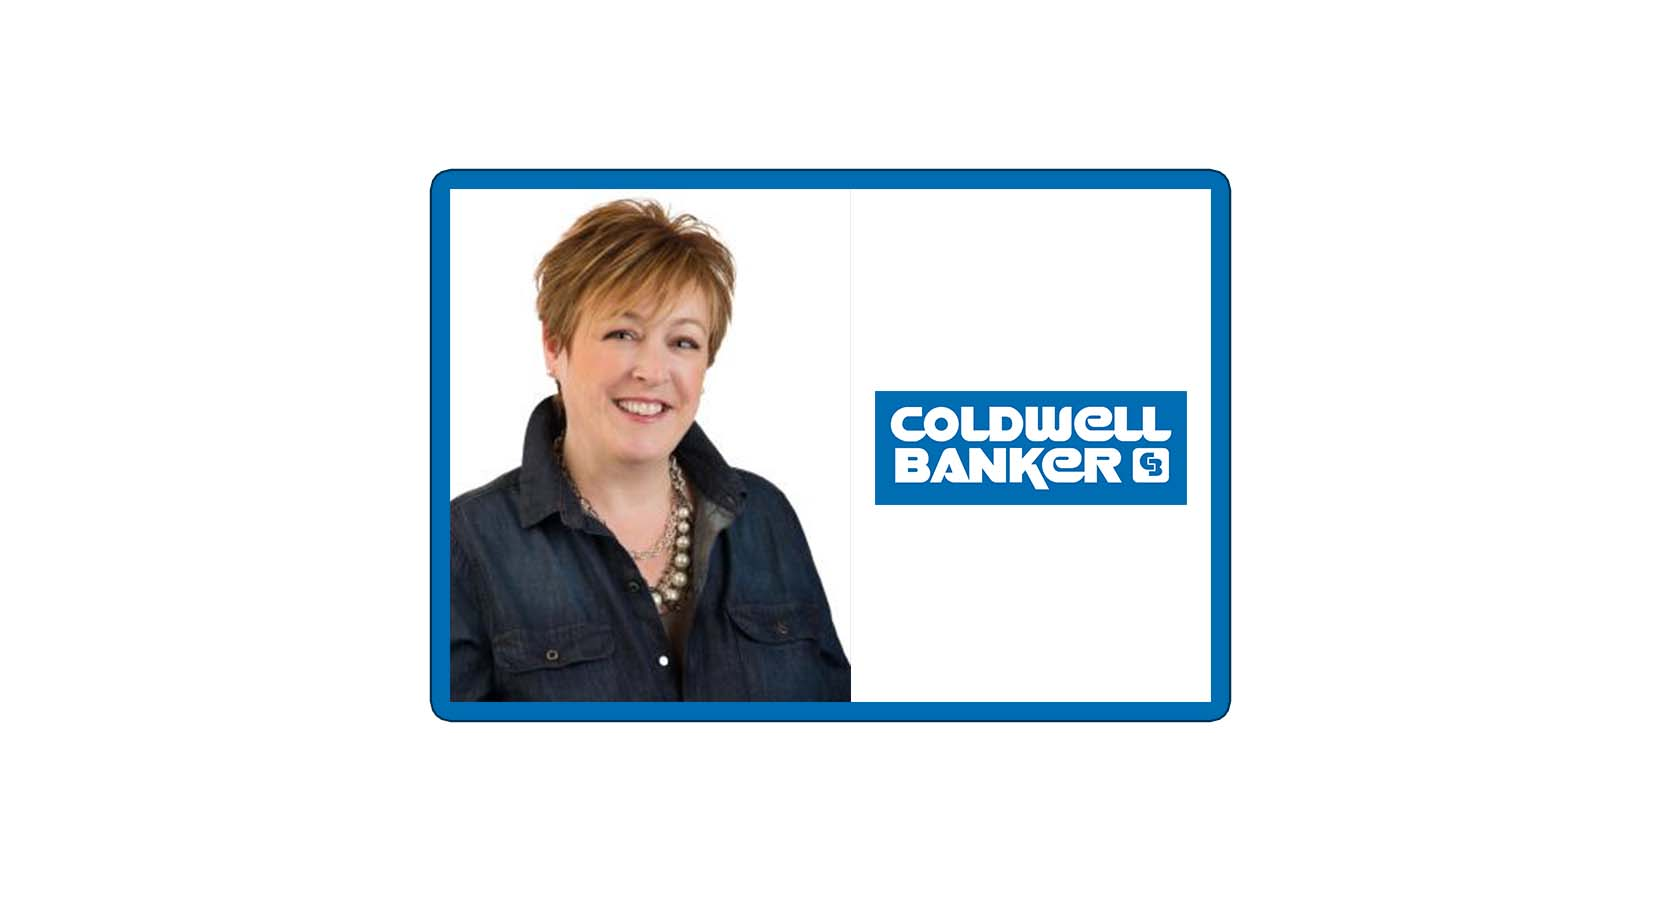 Coldwell Banker ® Email